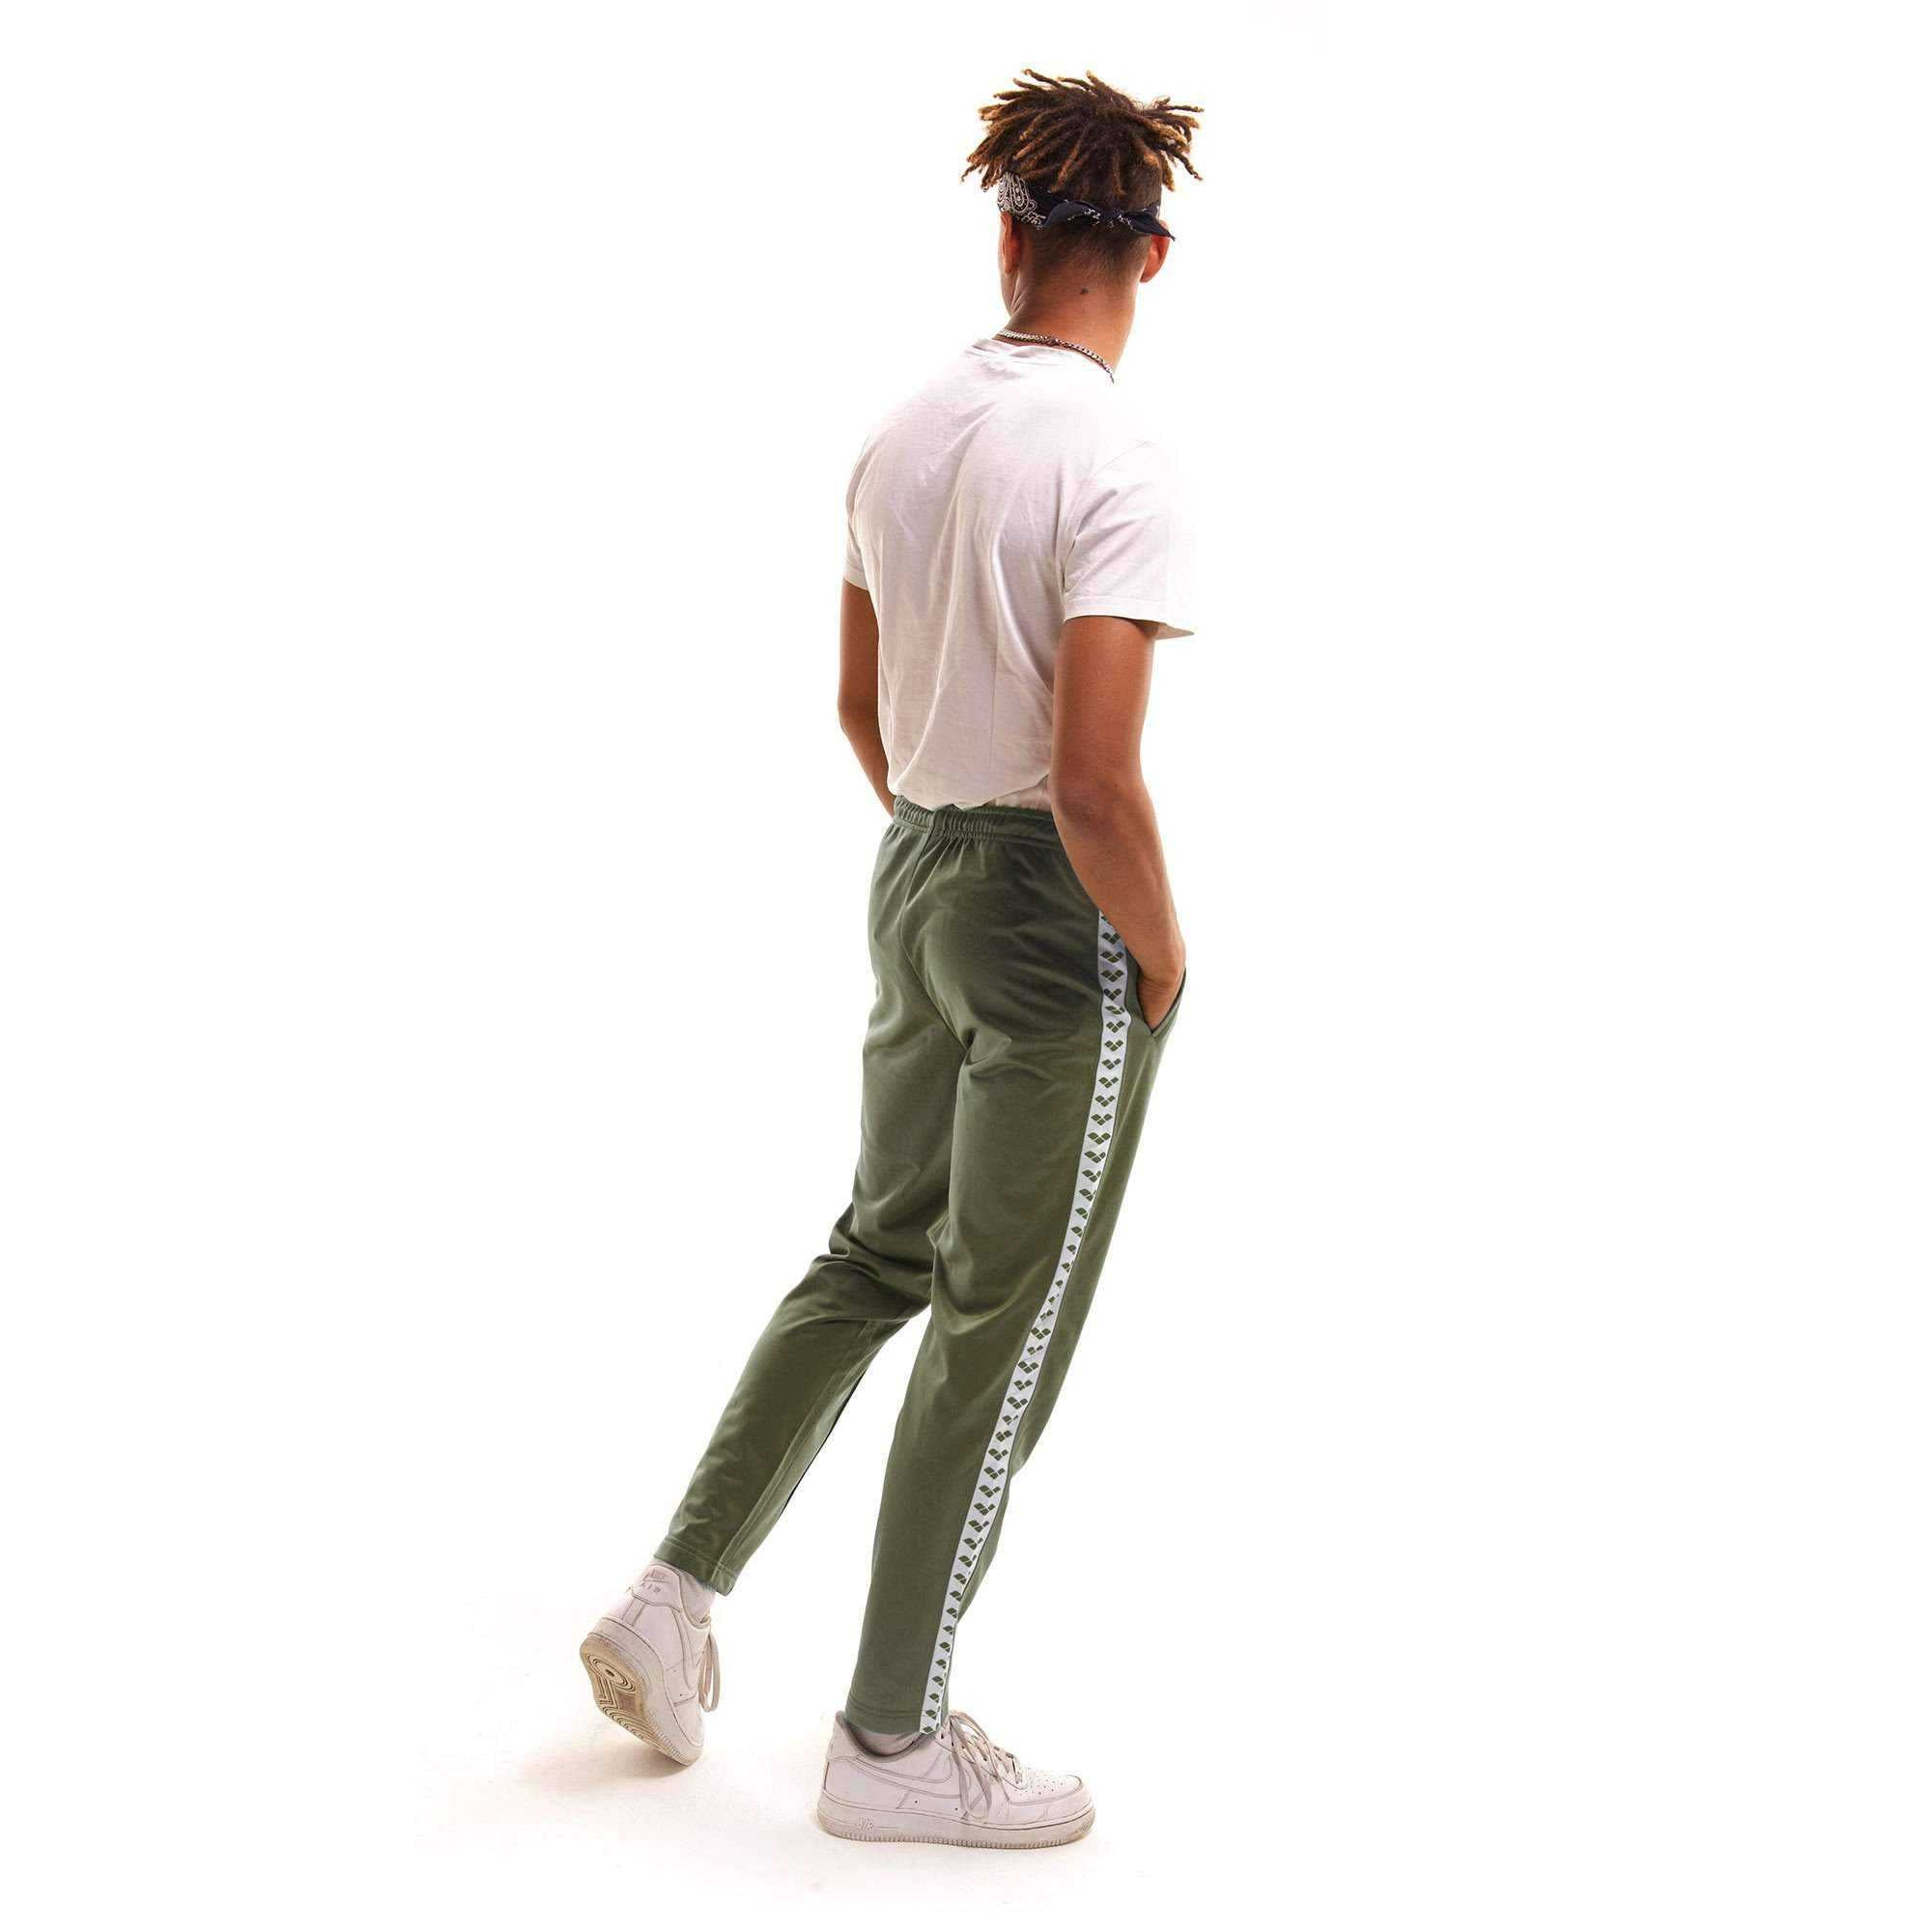 Heren Relax Iv Team Pant army-white-army | Zwemmershop